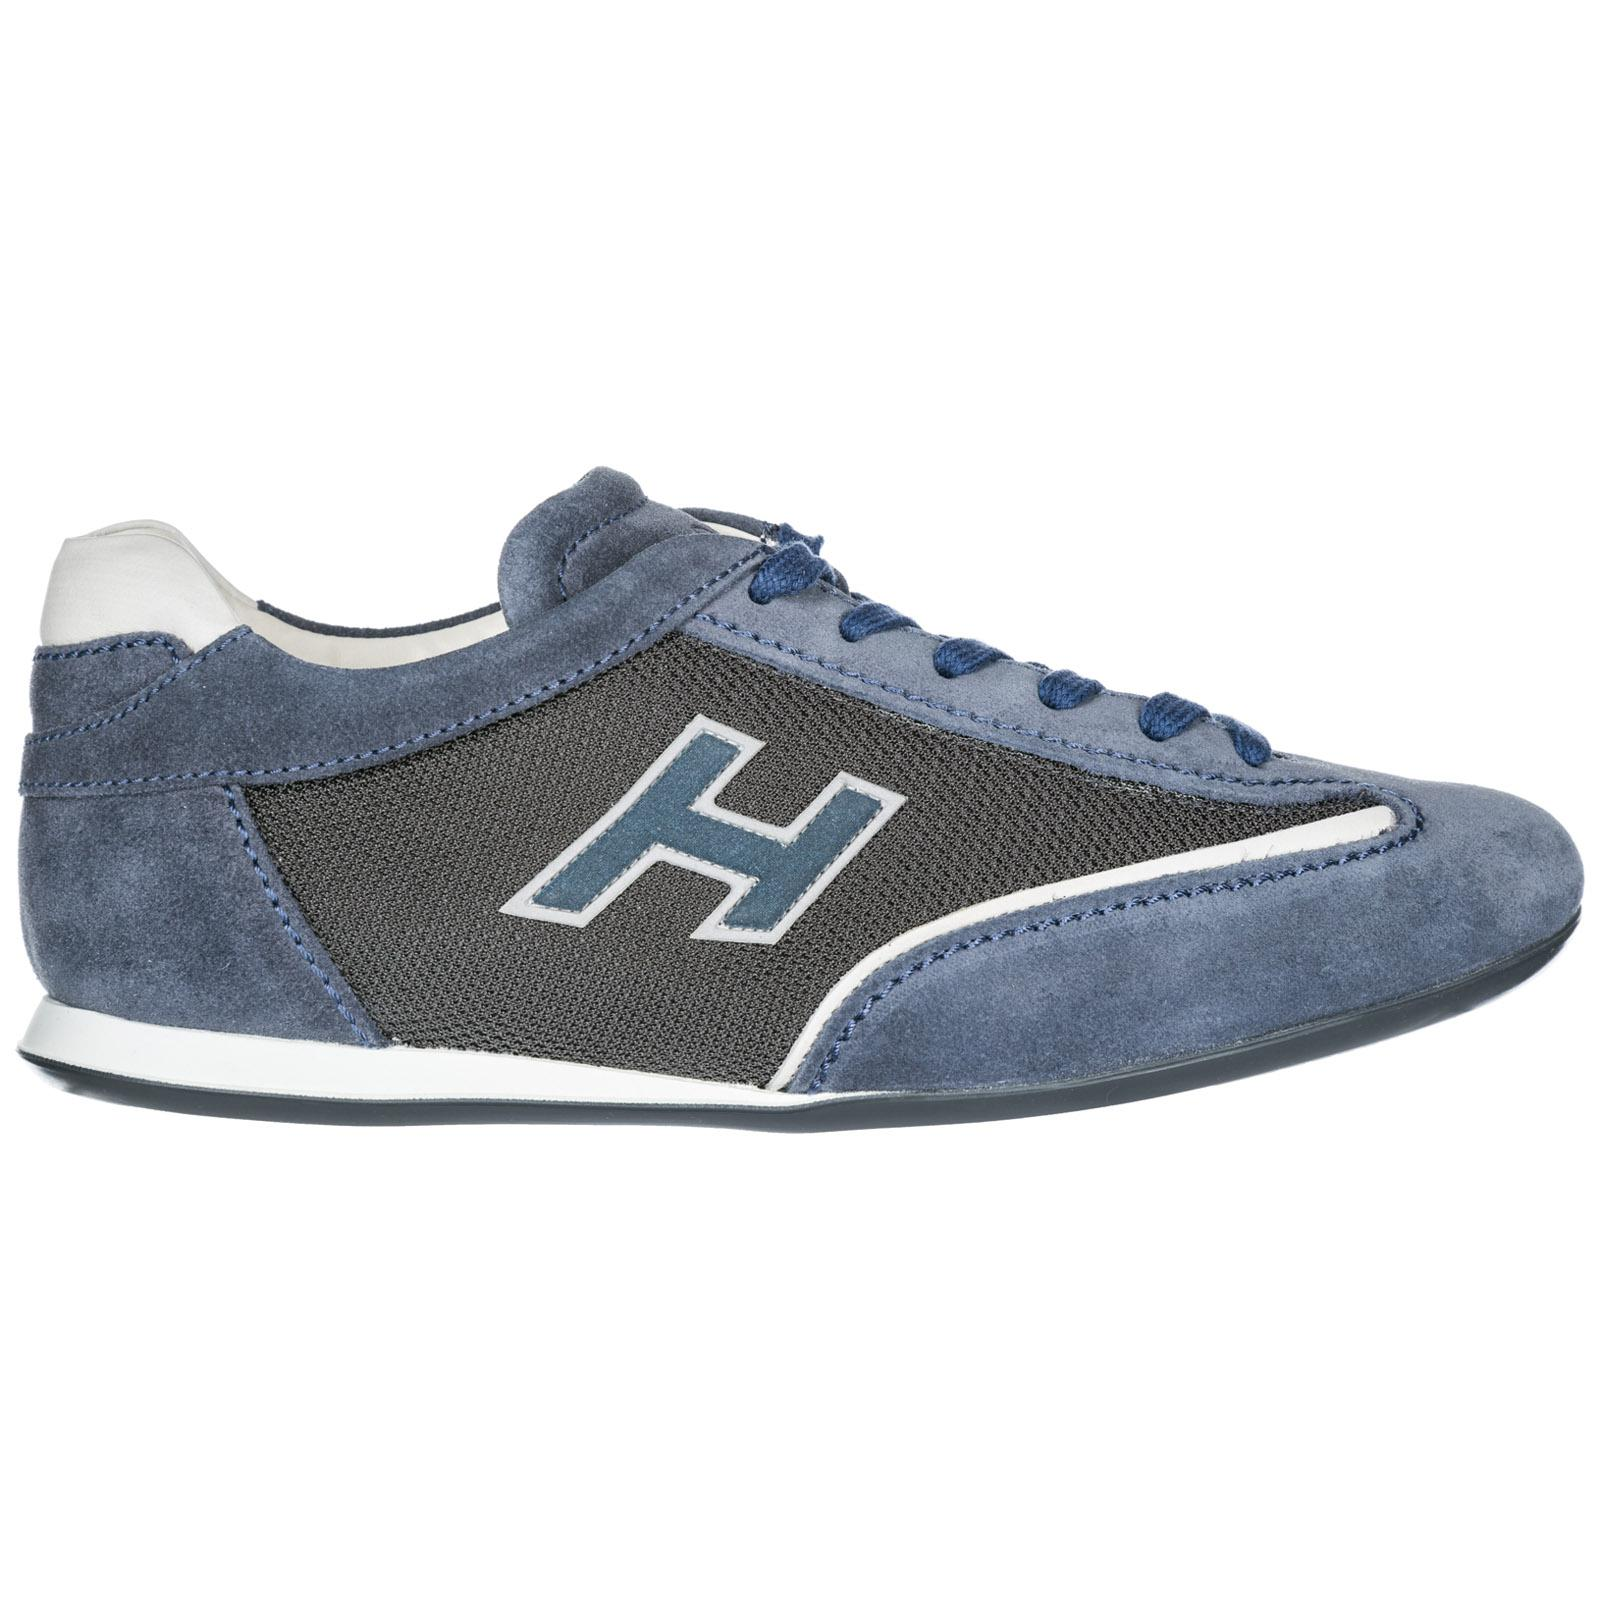 Hogan Shoes Suede Trainers Sneakers Olympia Slash H Flock in Blue ...